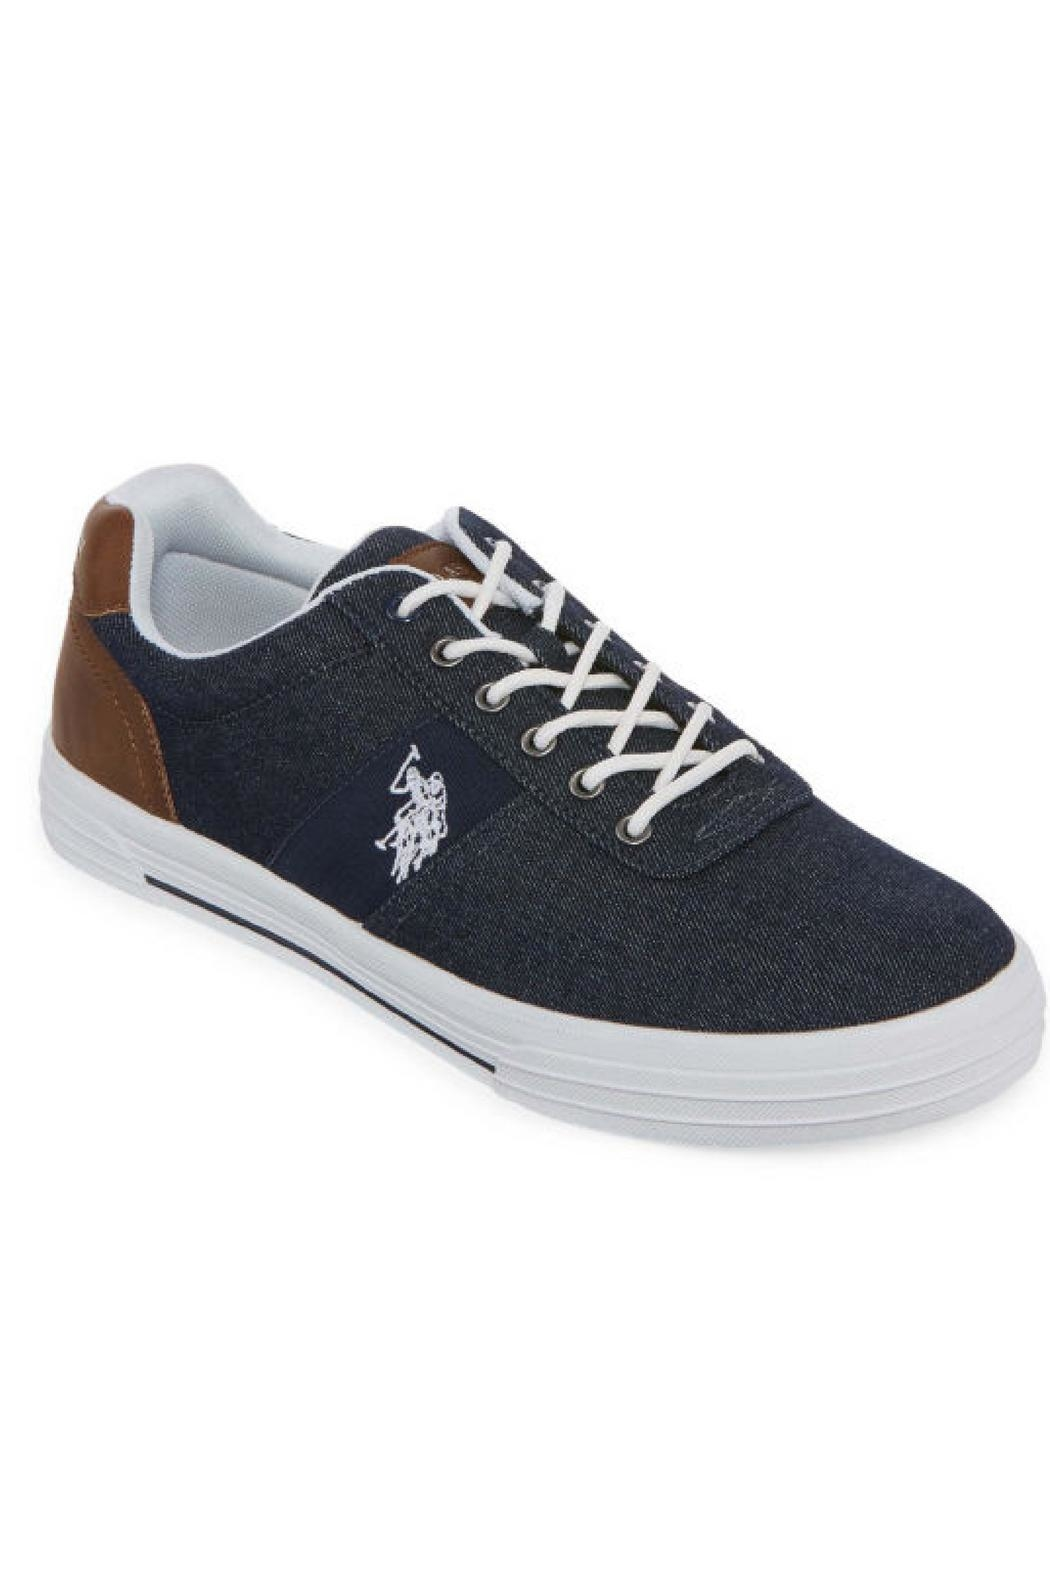 Beverly Hills Polo Club Helm Oxford Shoe - Front Full Image